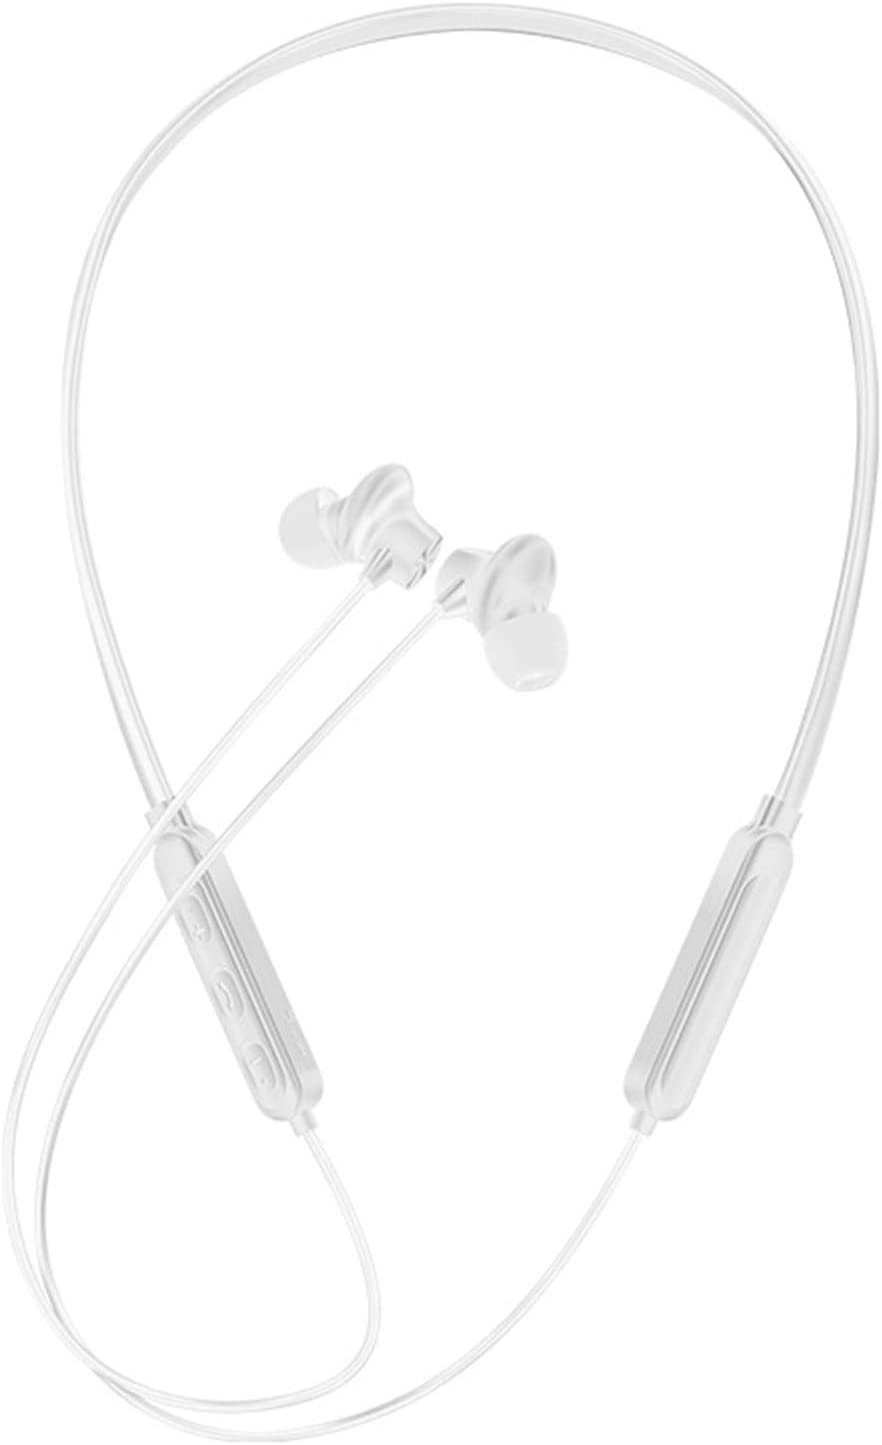 Bluetooth Earphones & Headphones,G03S Stereo Headphone Neckband in-Ear ABS Magnetic Bluetooth 5.0 Earphone Compatible with iPhone Android